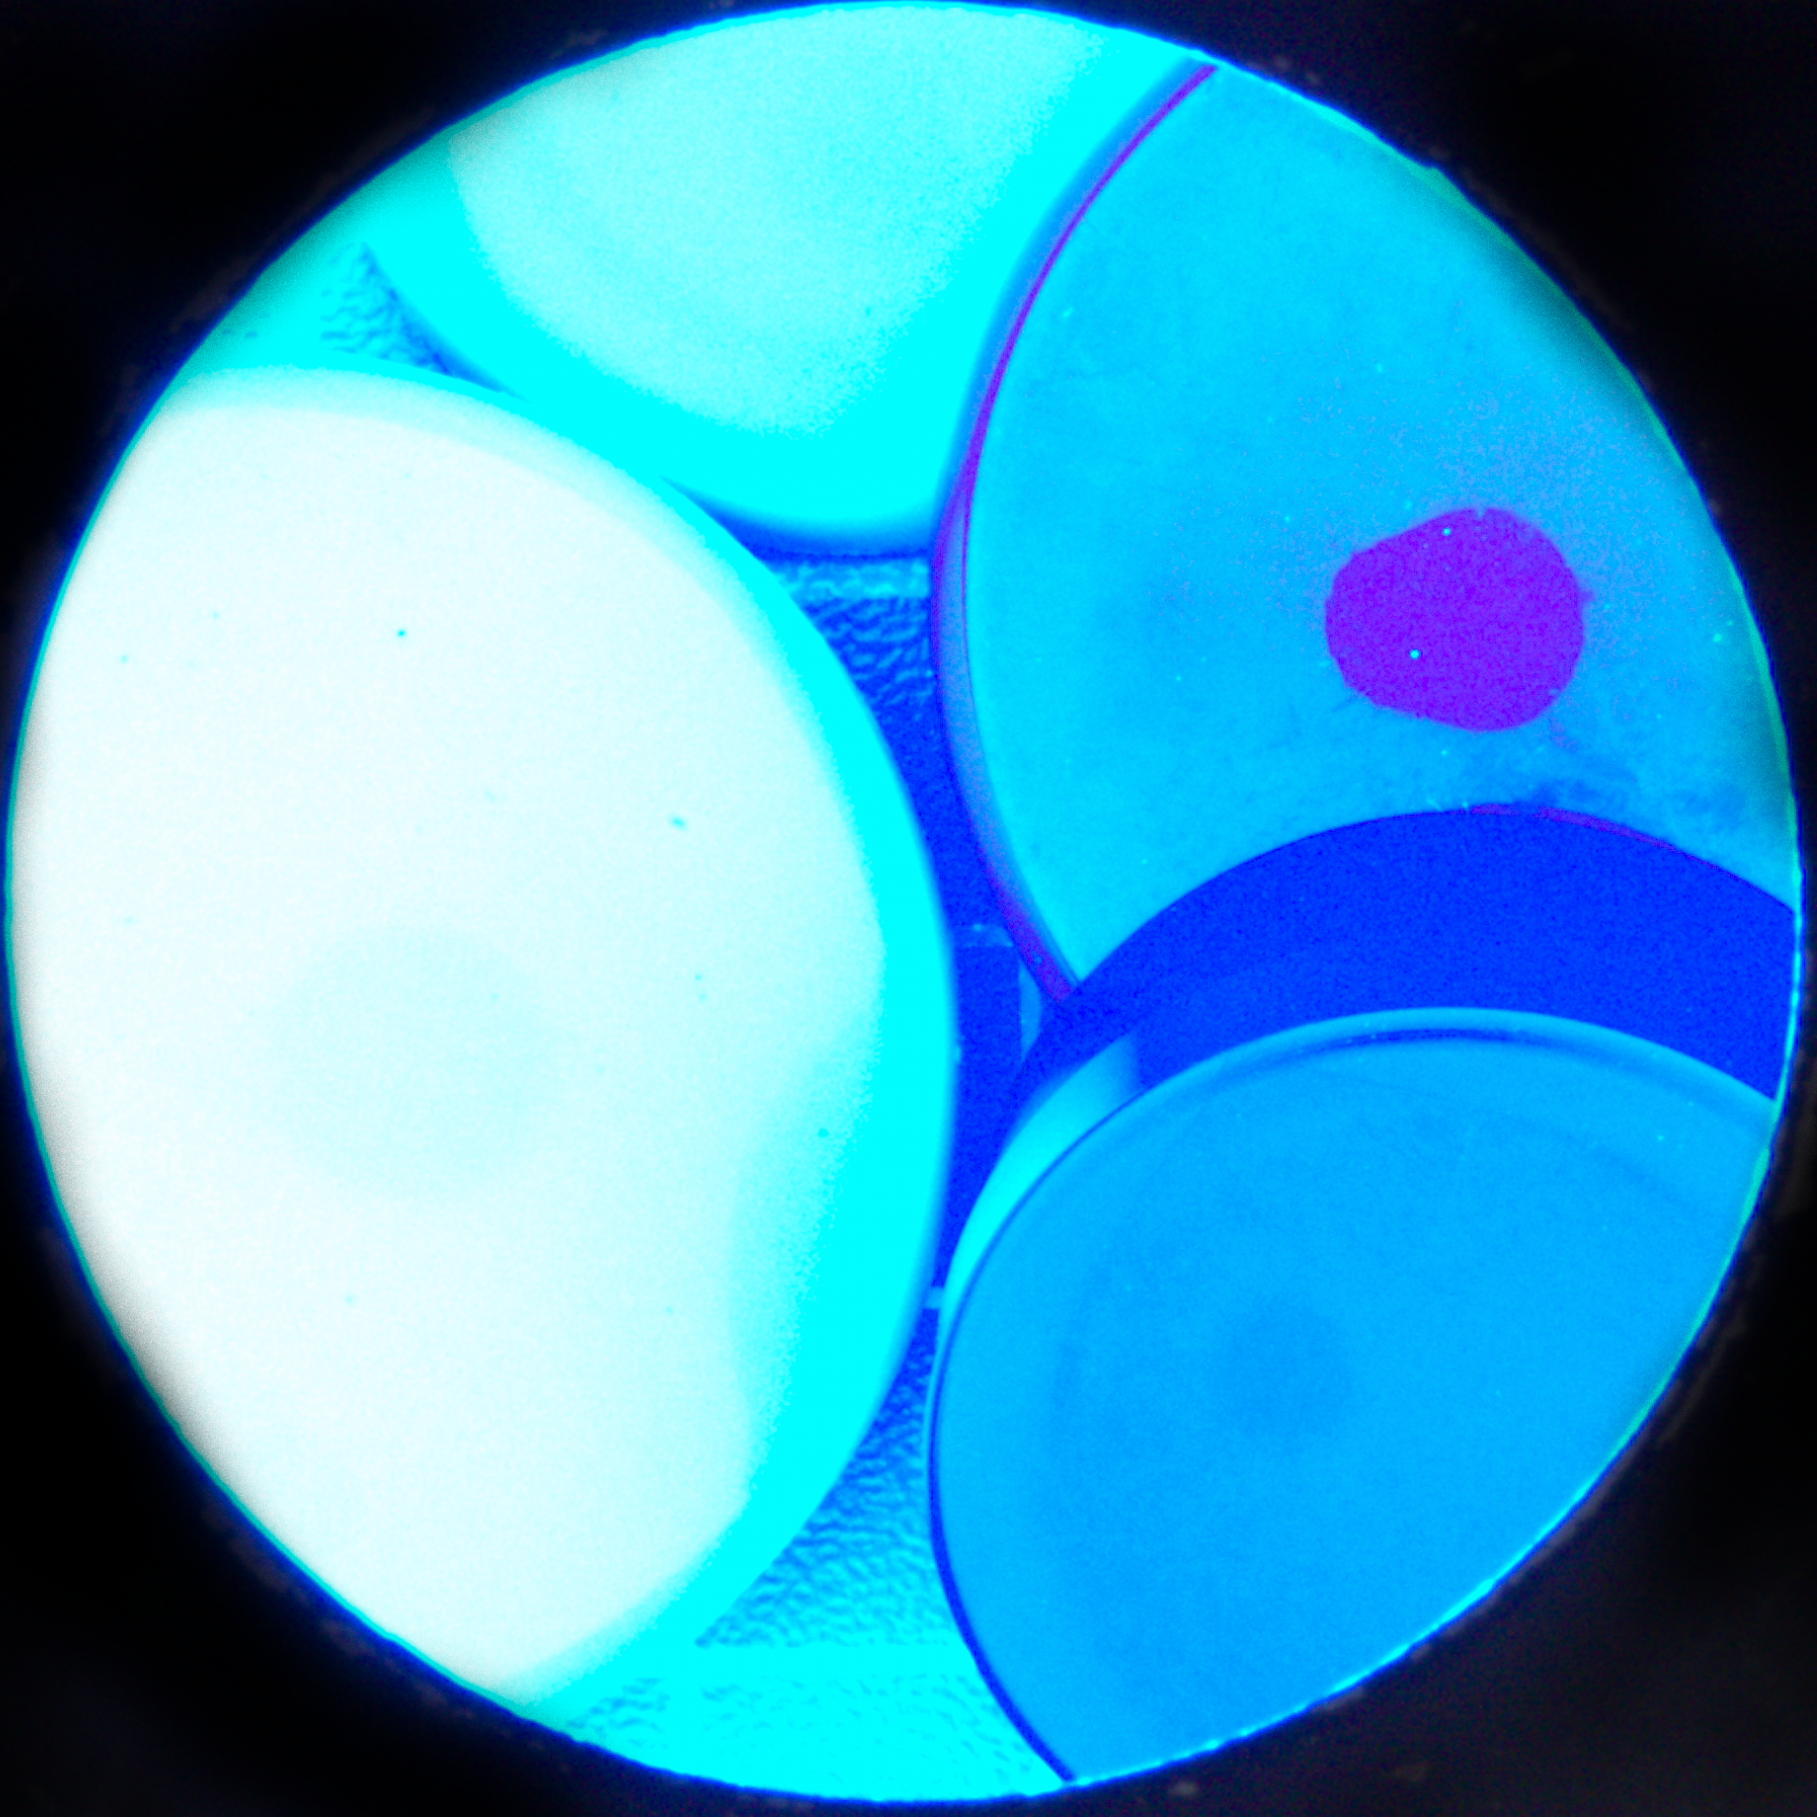 coloured-with-blue-light